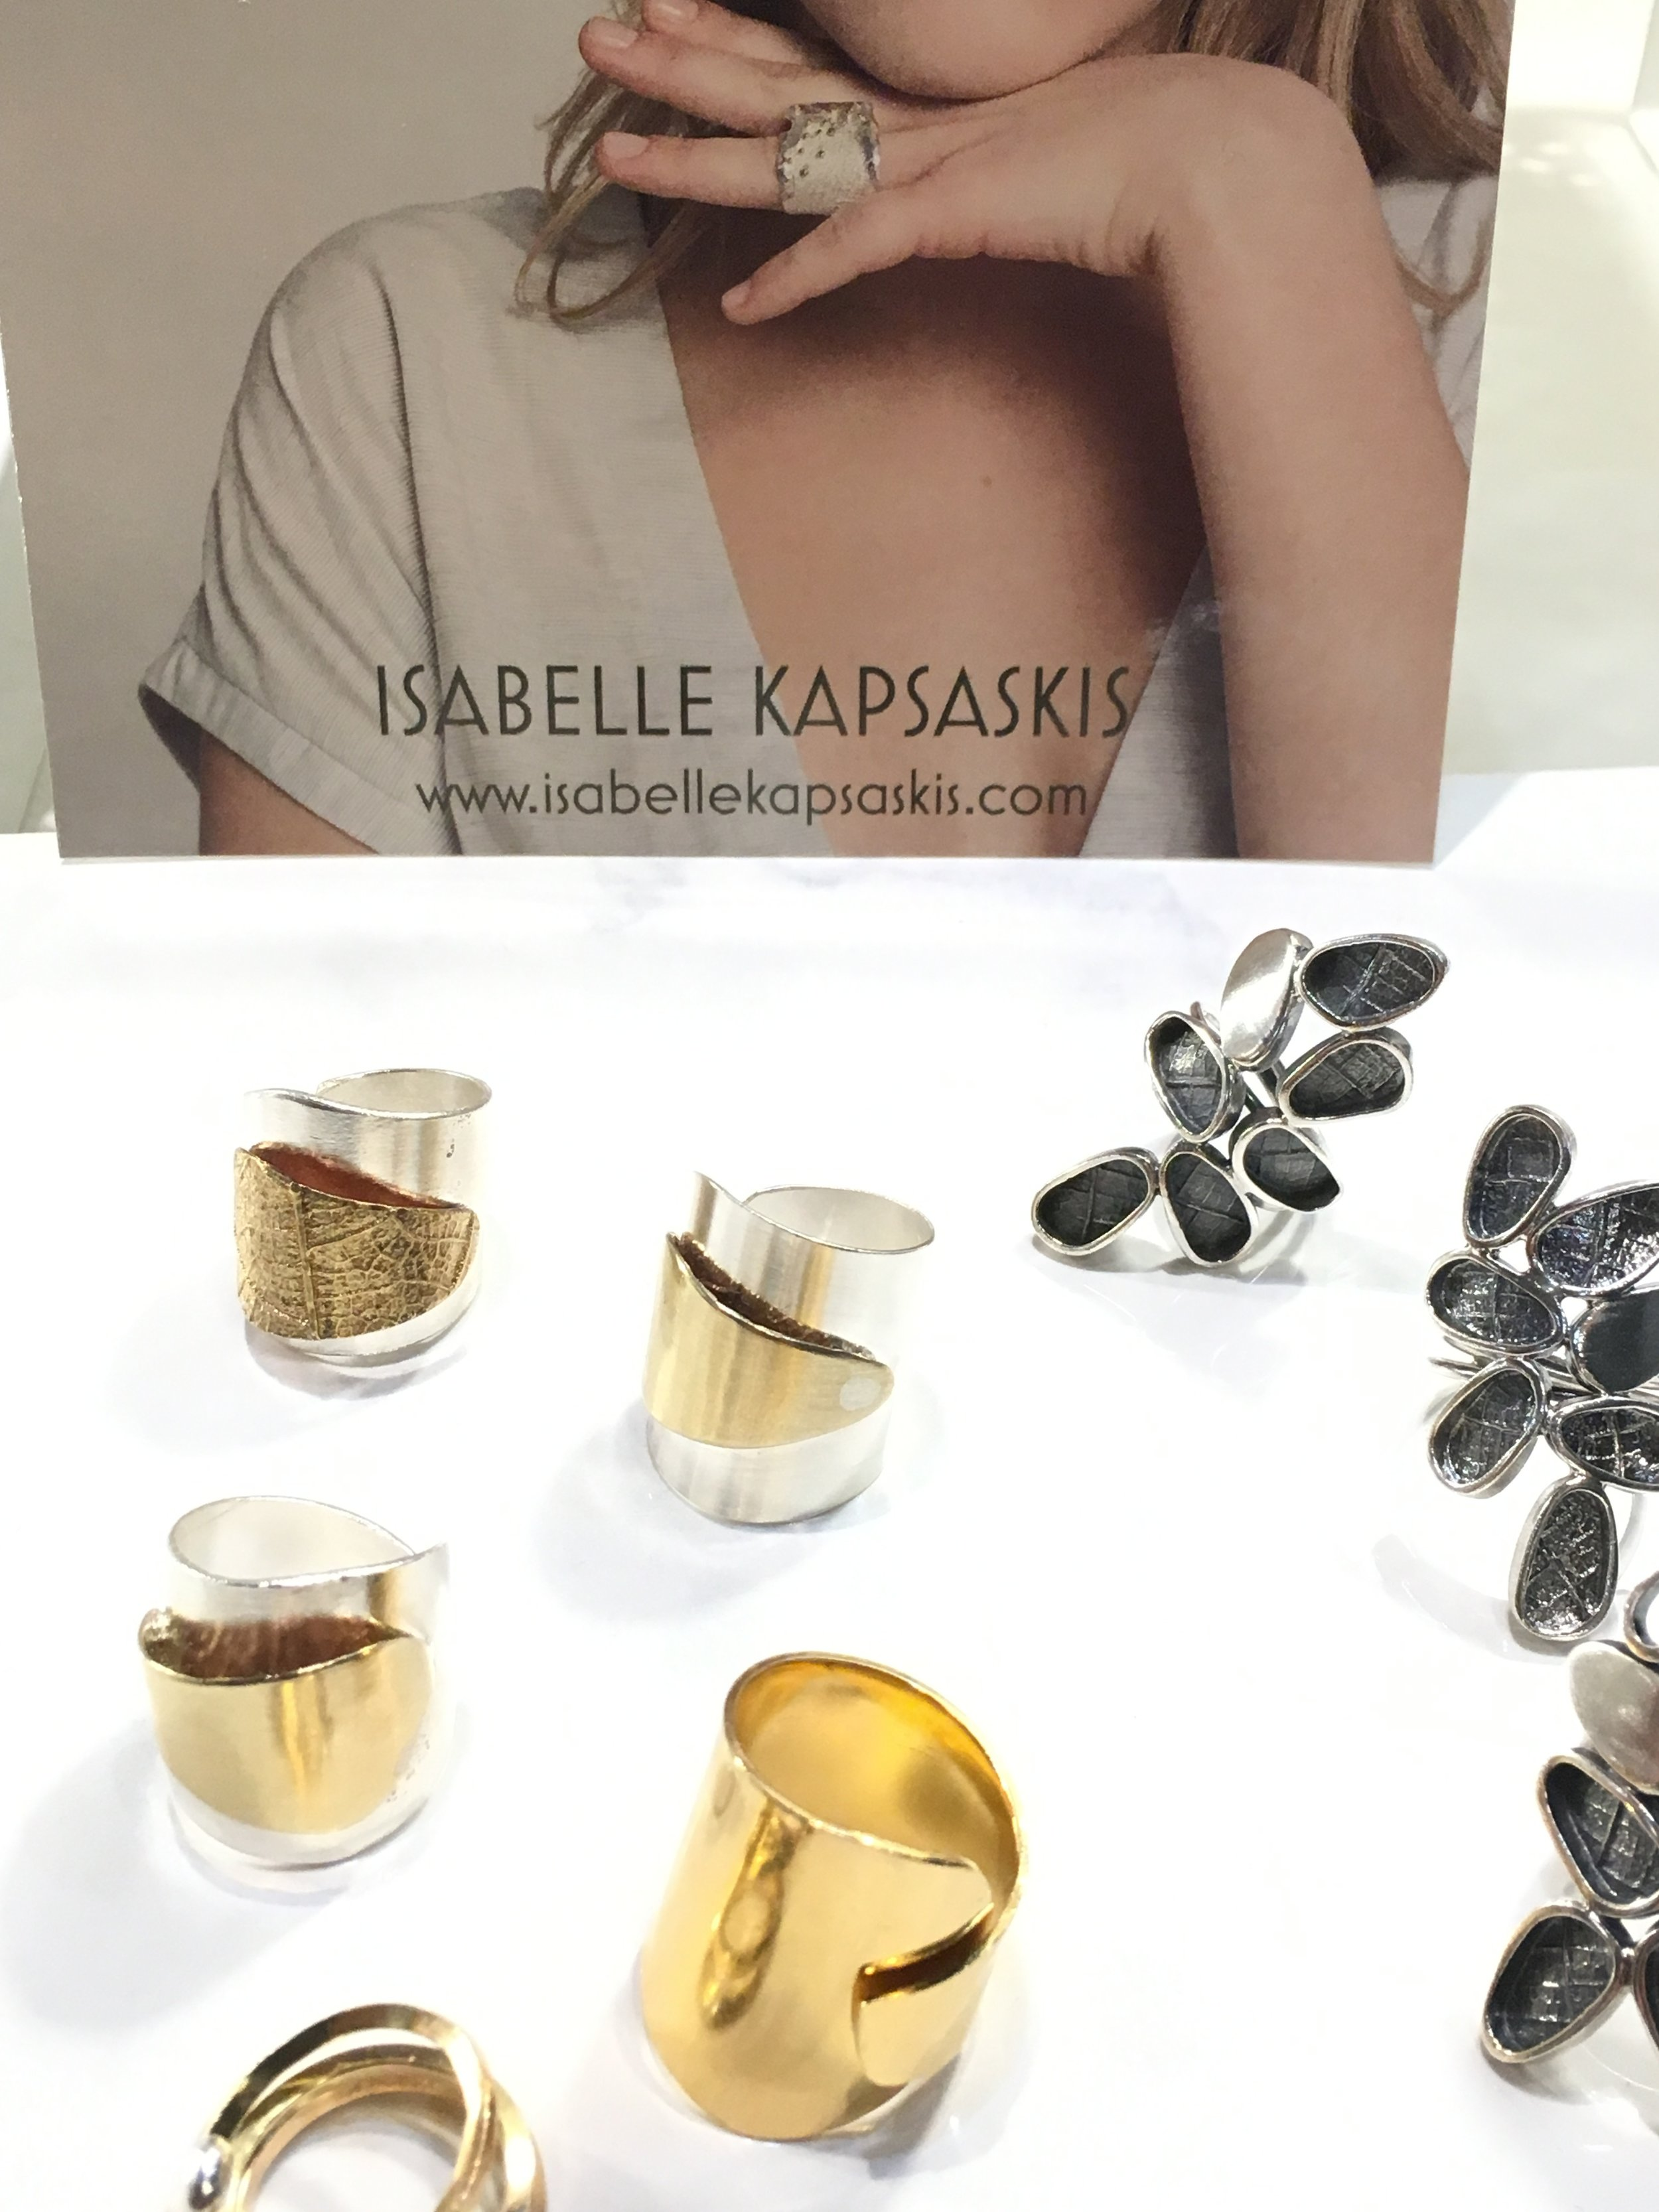 isabelle kapsaskis gold and silver.JPG